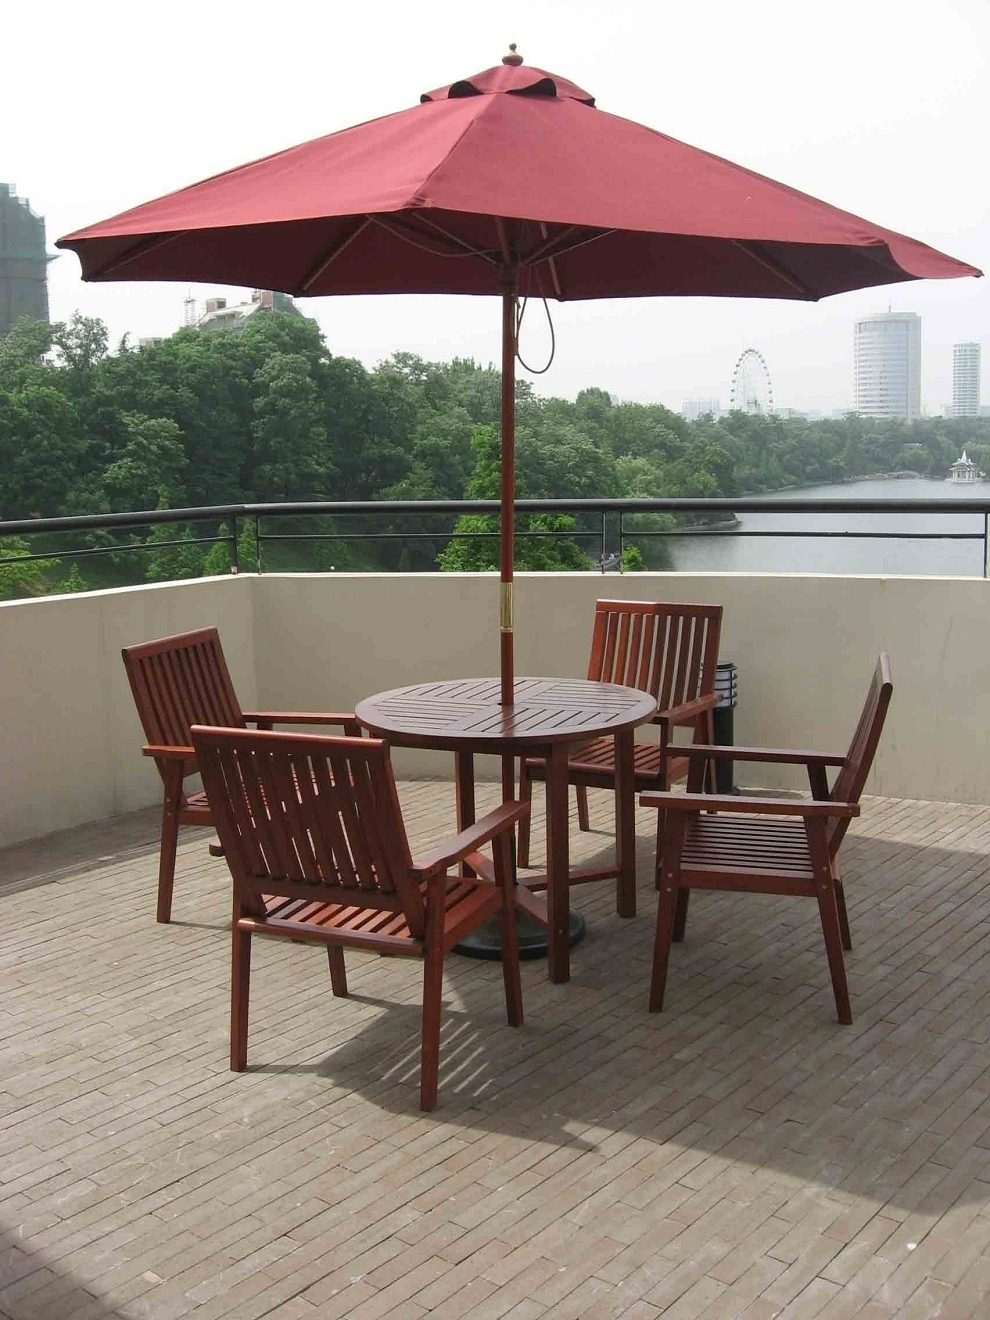 Patio Tables With Umbrellas Regarding Trendy Patio Outdooratio Table Chairs And Umbrellas Umbrella Set Restaurant (View 12 of 20)